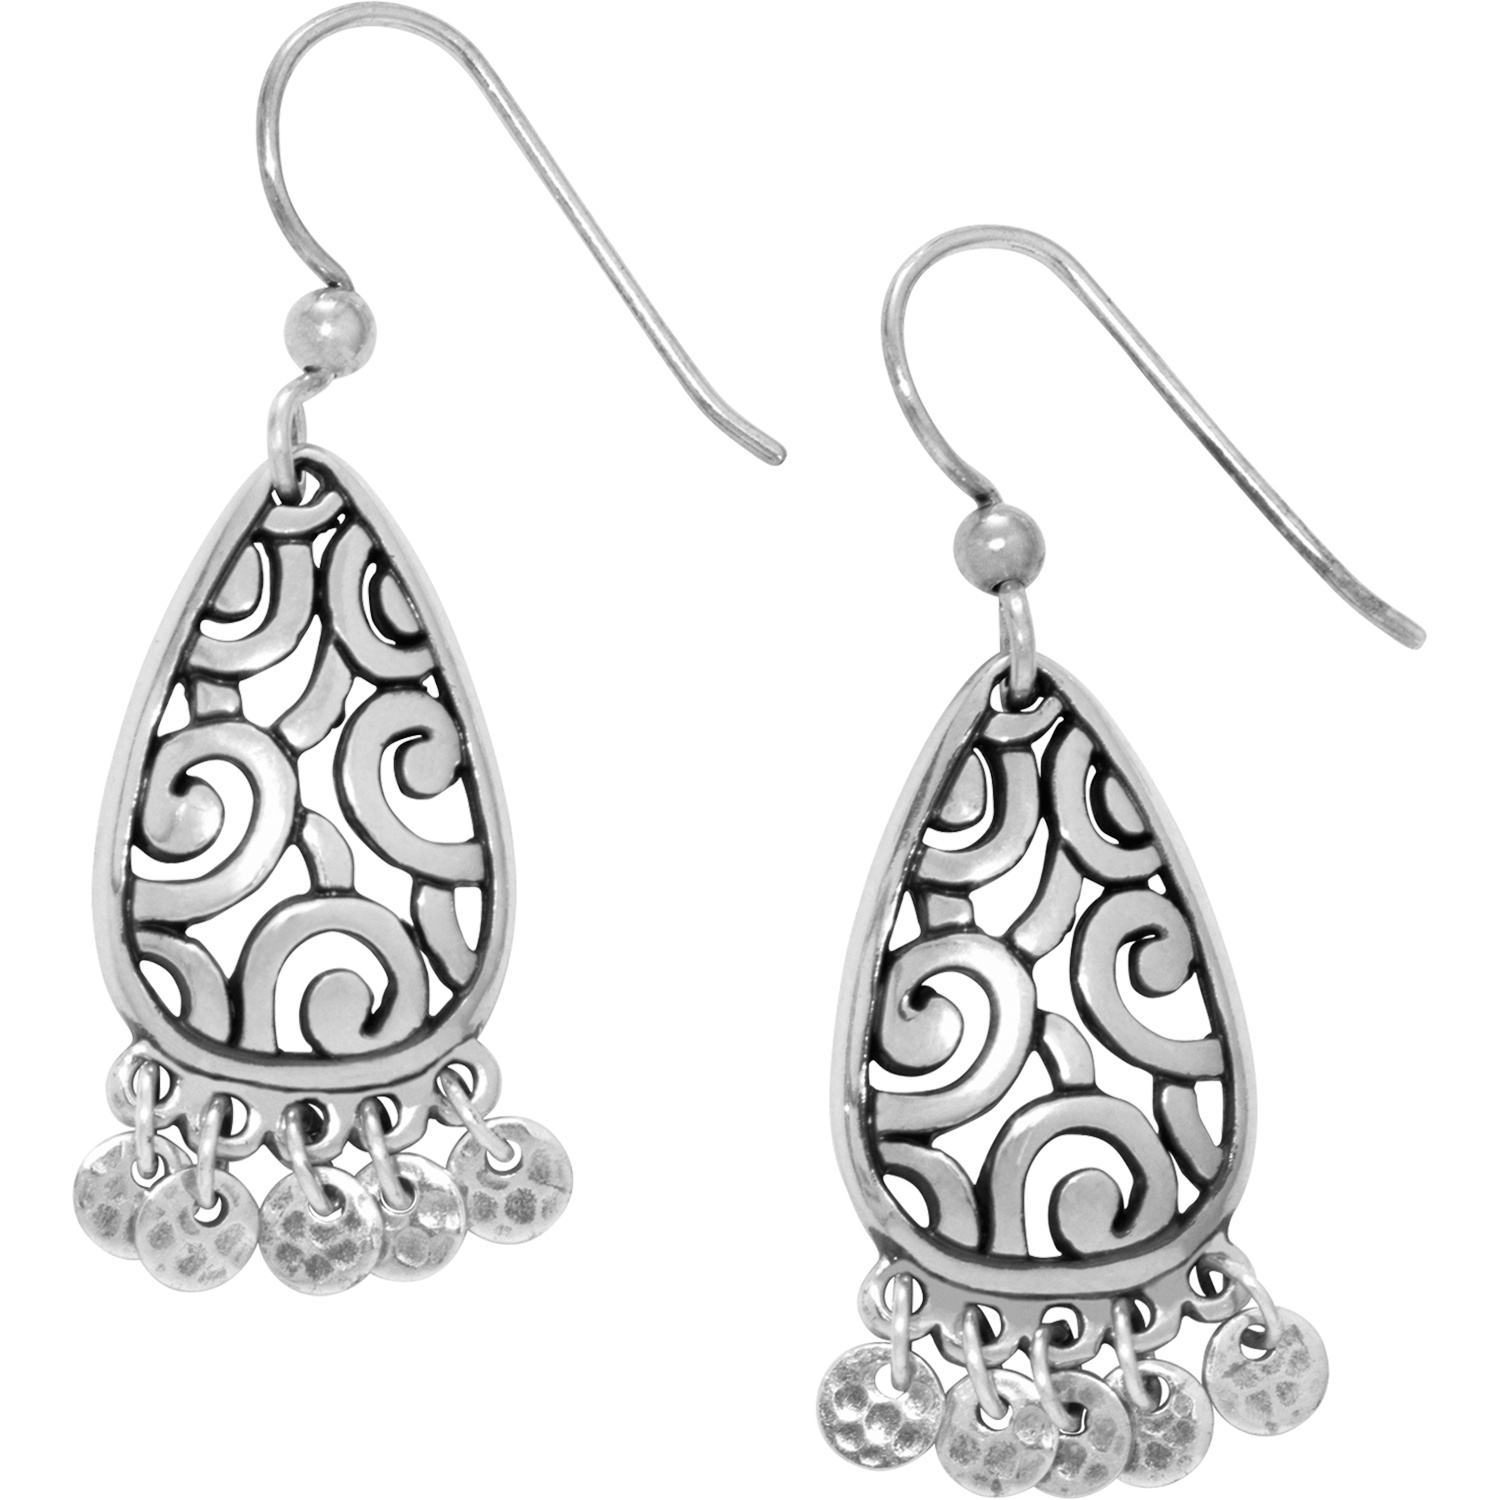 deco deco dangle french wire earrings earrings. Black Bedroom Furniture Sets. Home Design Ideas